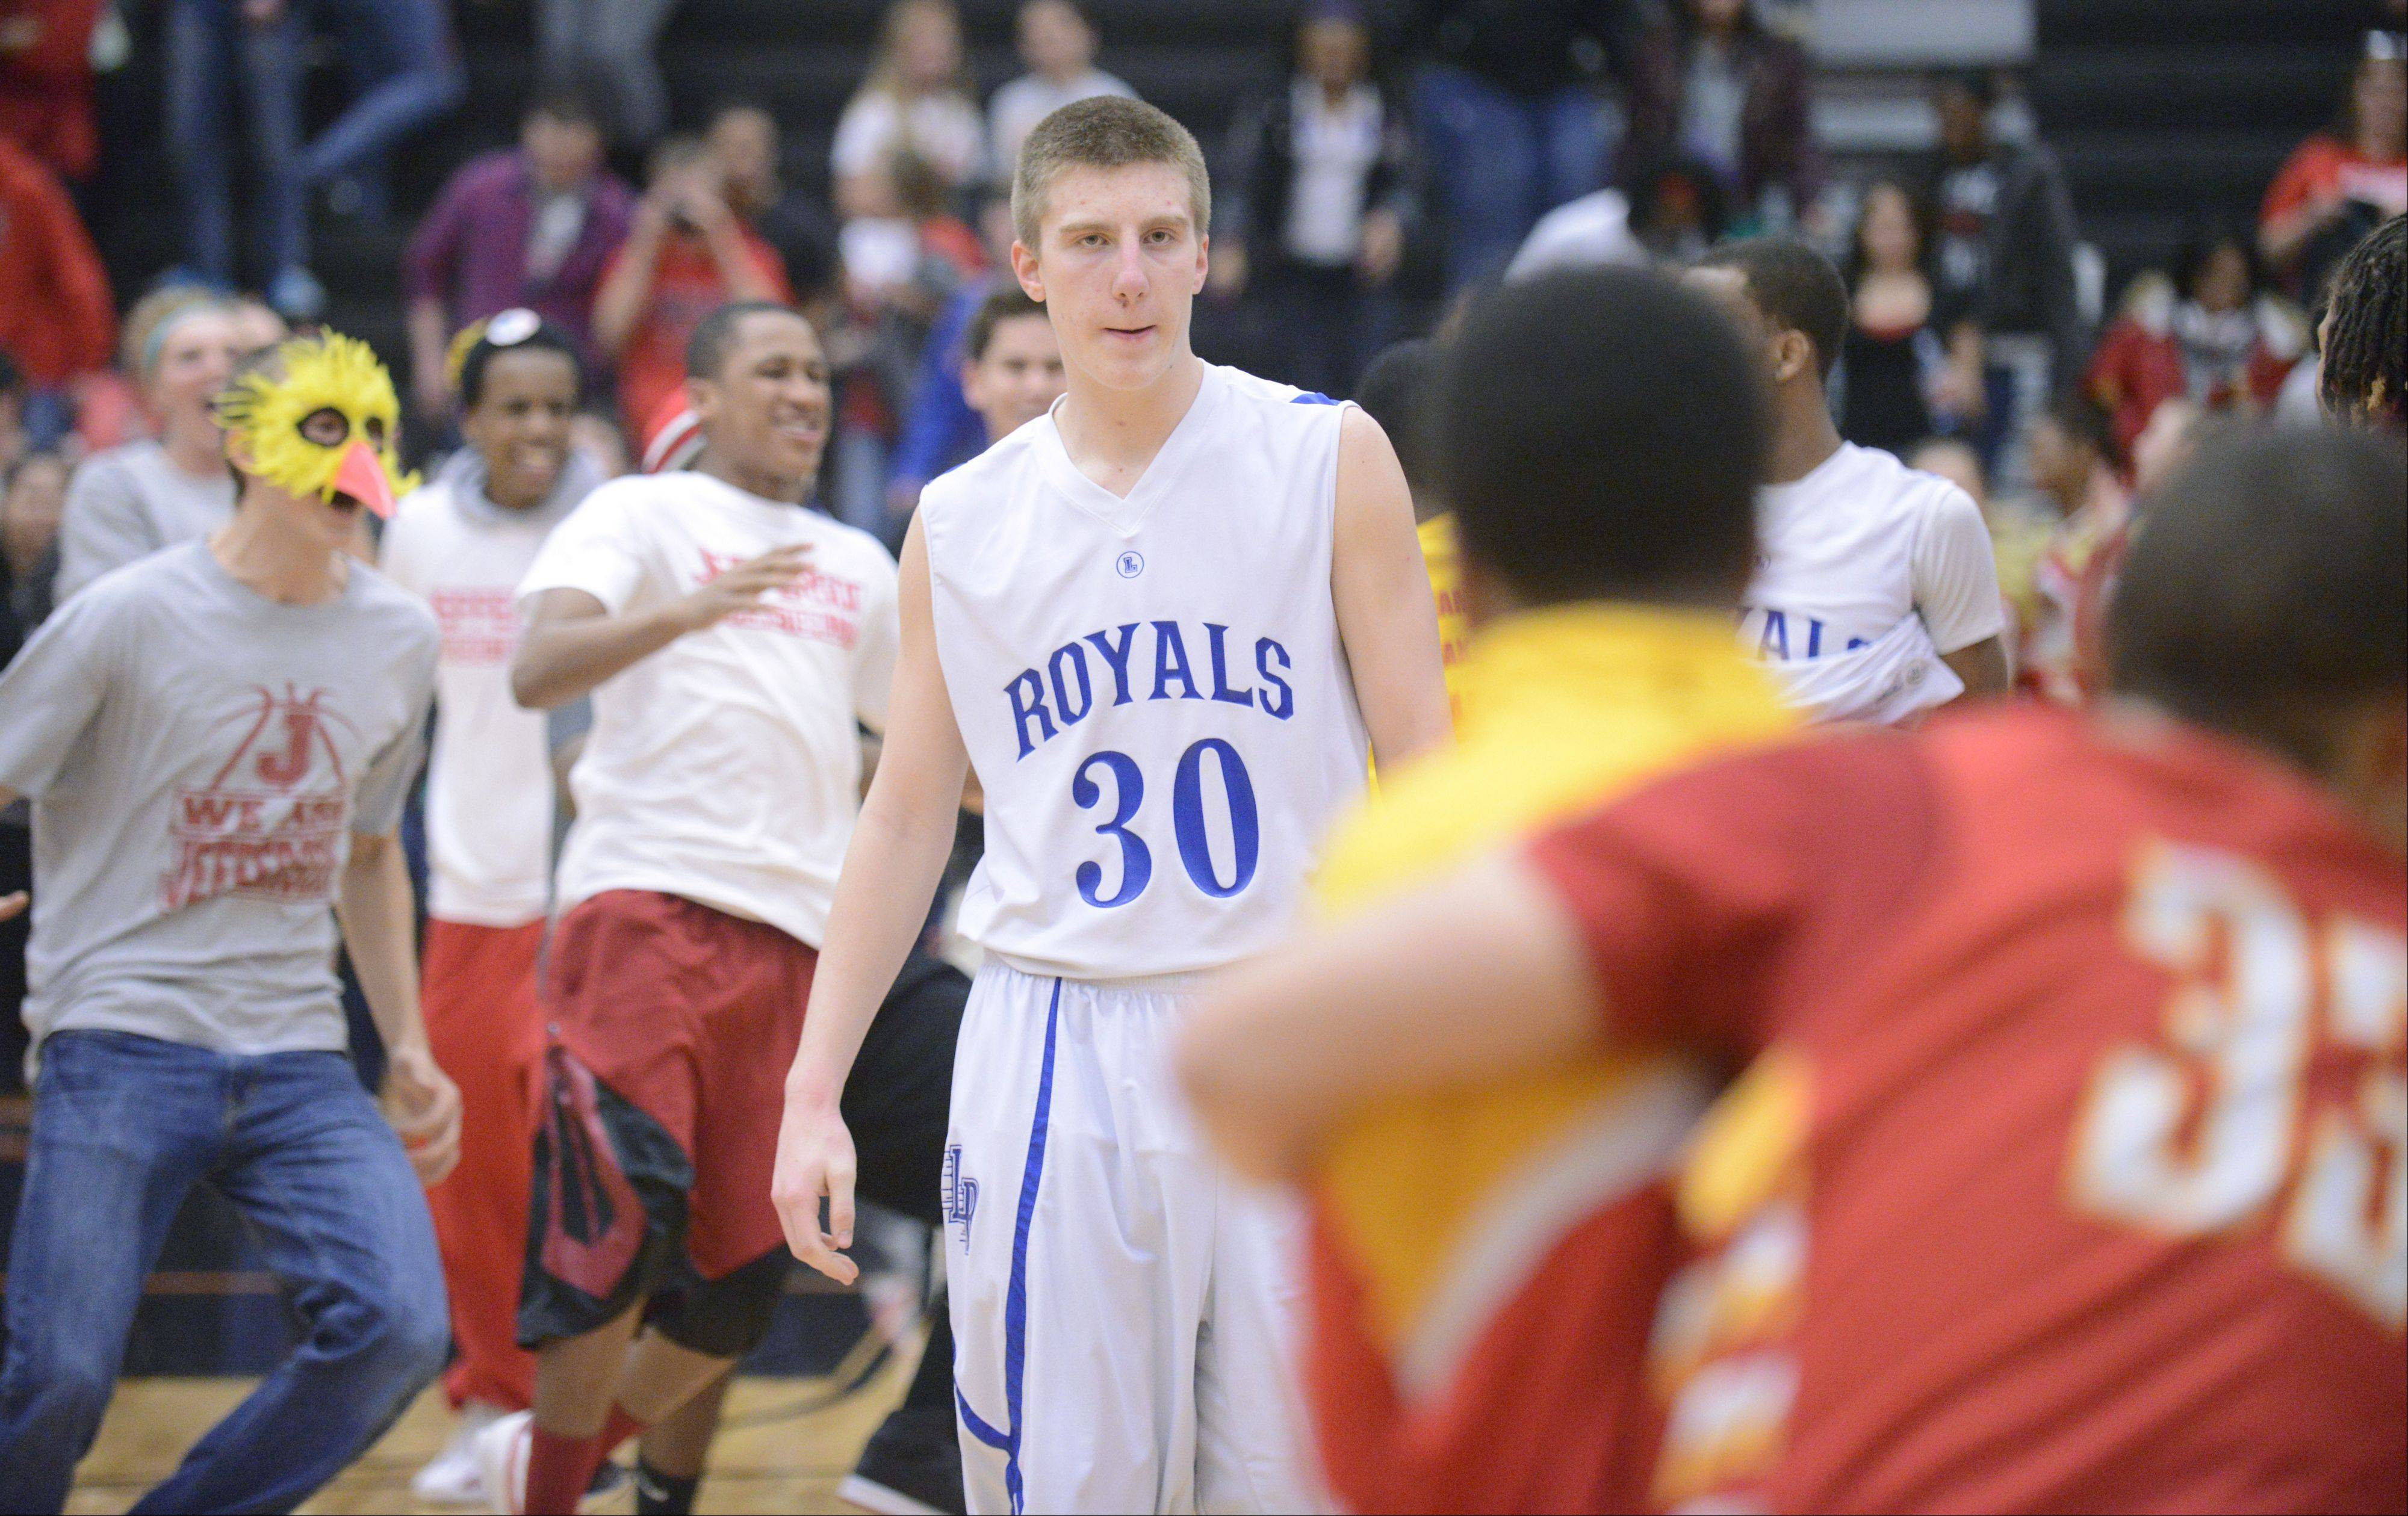 Larkin's Brayden Royse walks among celebrating teammates and fans from Rockford Jefferson after the Royals' loss to them in the Class 4A DeKalb sectional semifinals on Wednesday, March 6.